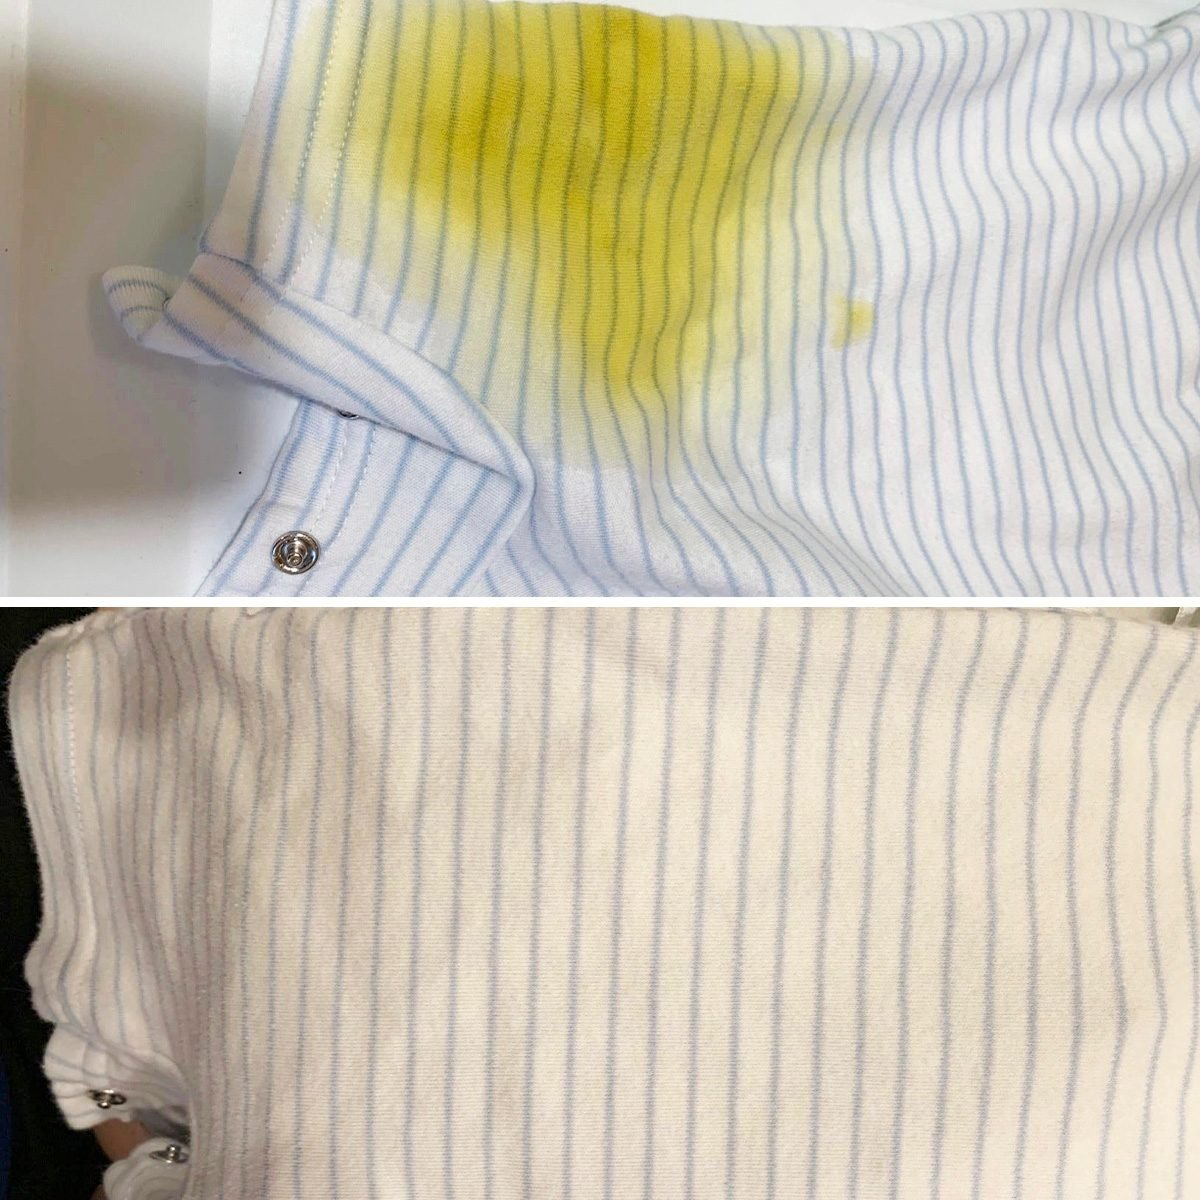 Oxiclean Baby Stain Remover Review